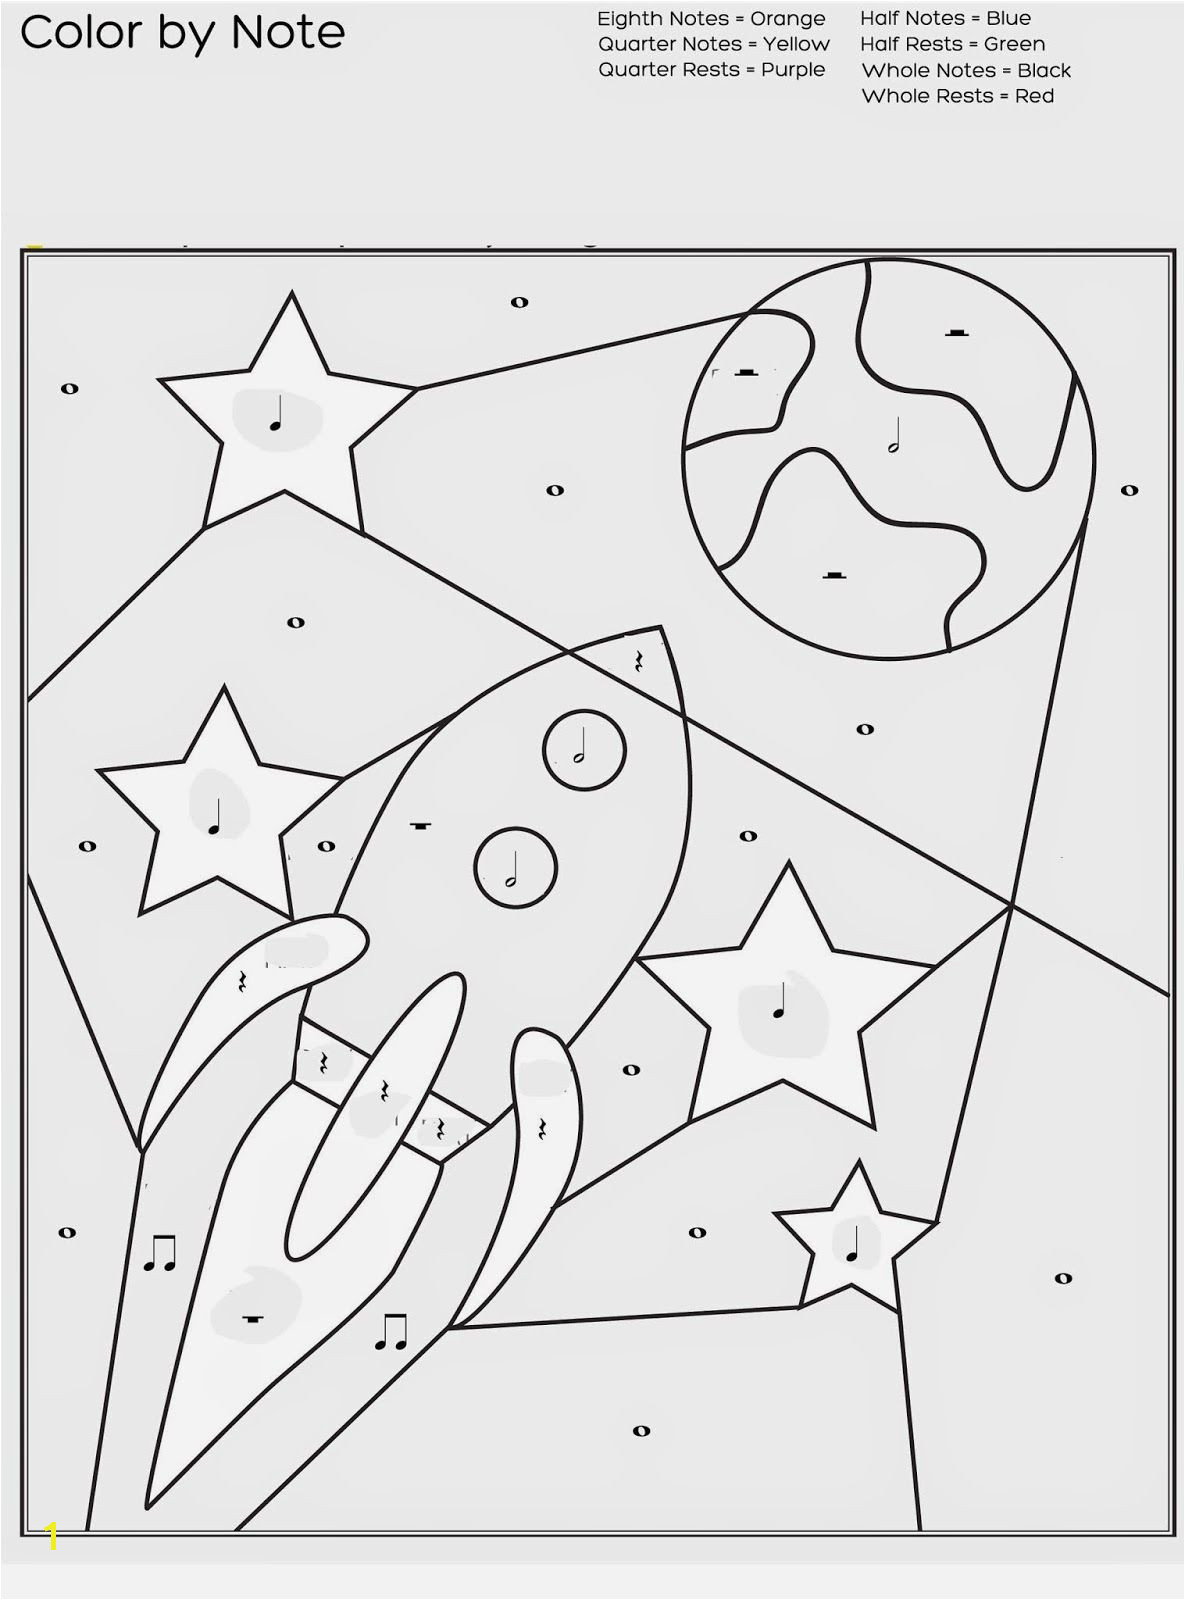 Quarter Note Coloring Page Free Printable Color by Note Worksheet